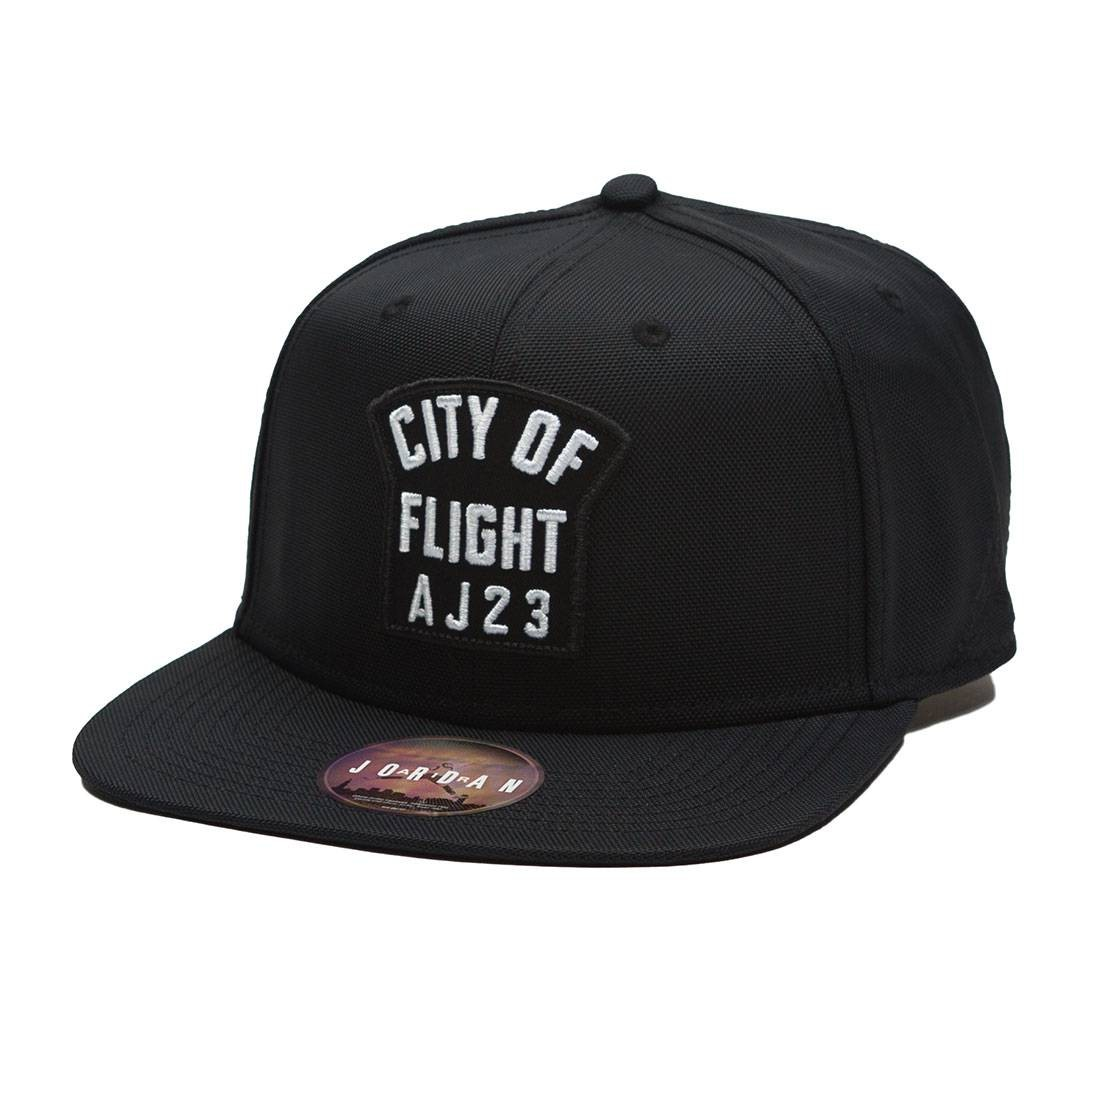 9ec9329d016ac2 jordan men unisex jordan jumpman pro city of flight zip cap black black  white